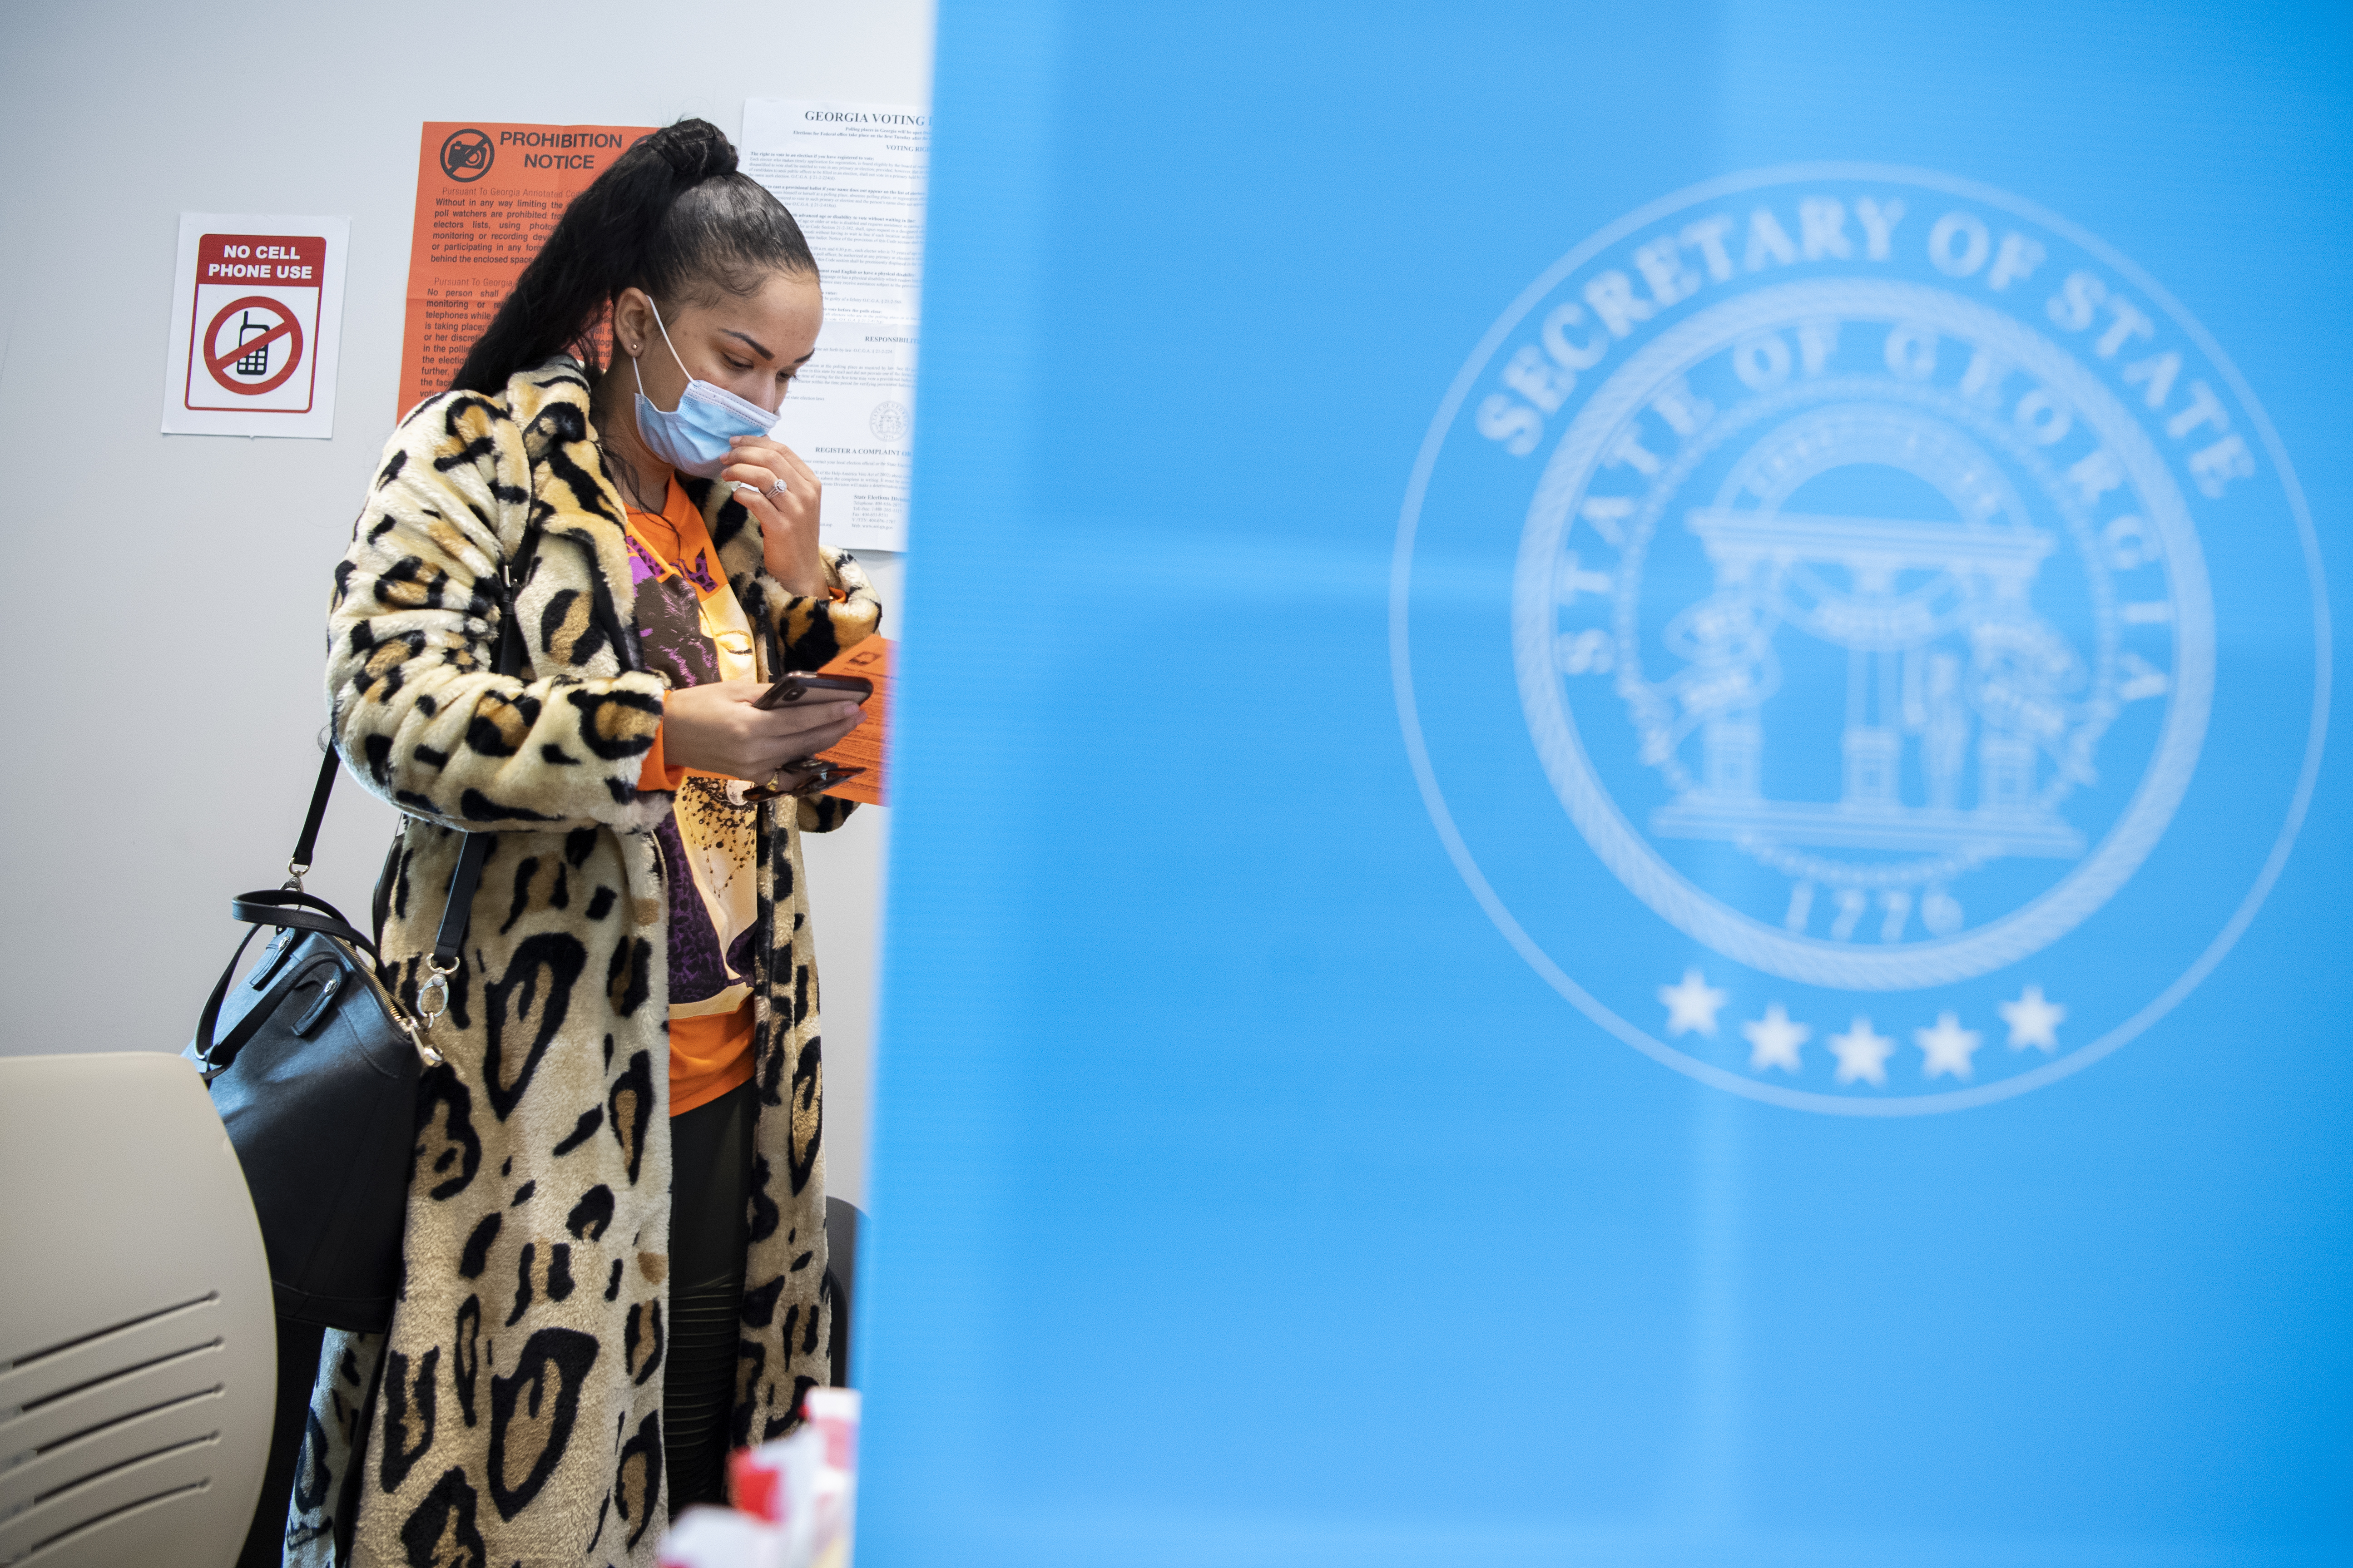 A woman stands in line, waiting to vote. She's looking at her phone.